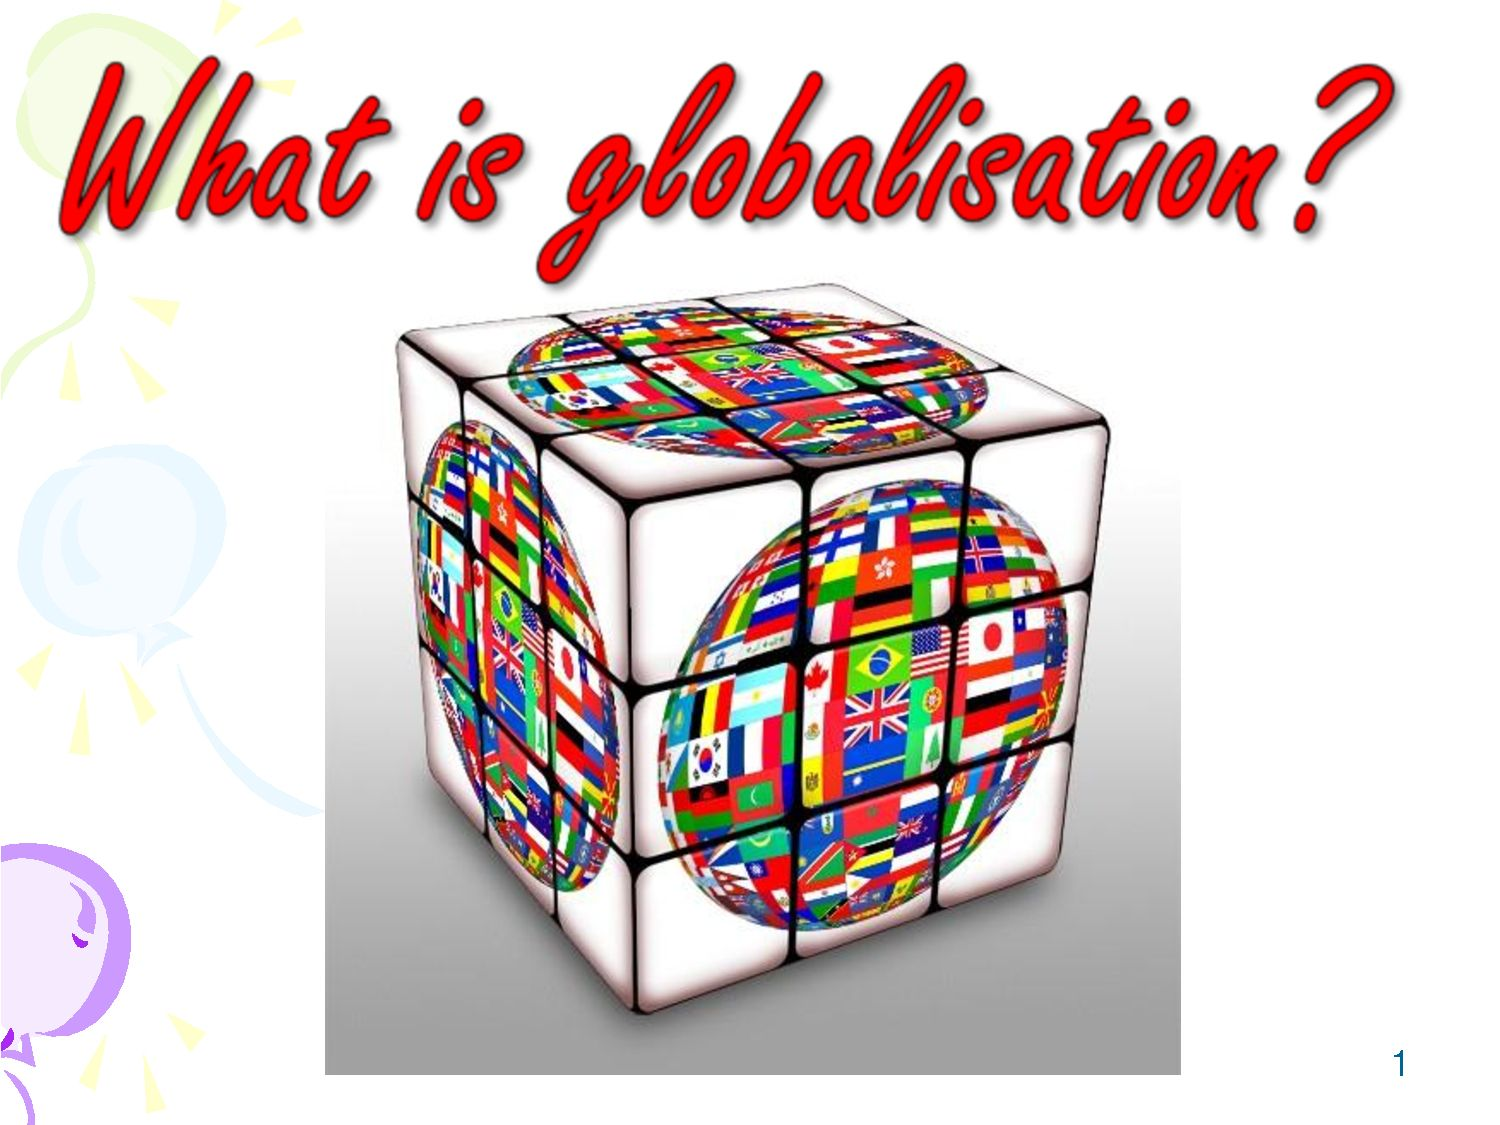 Globalisation is countries increasingly connected